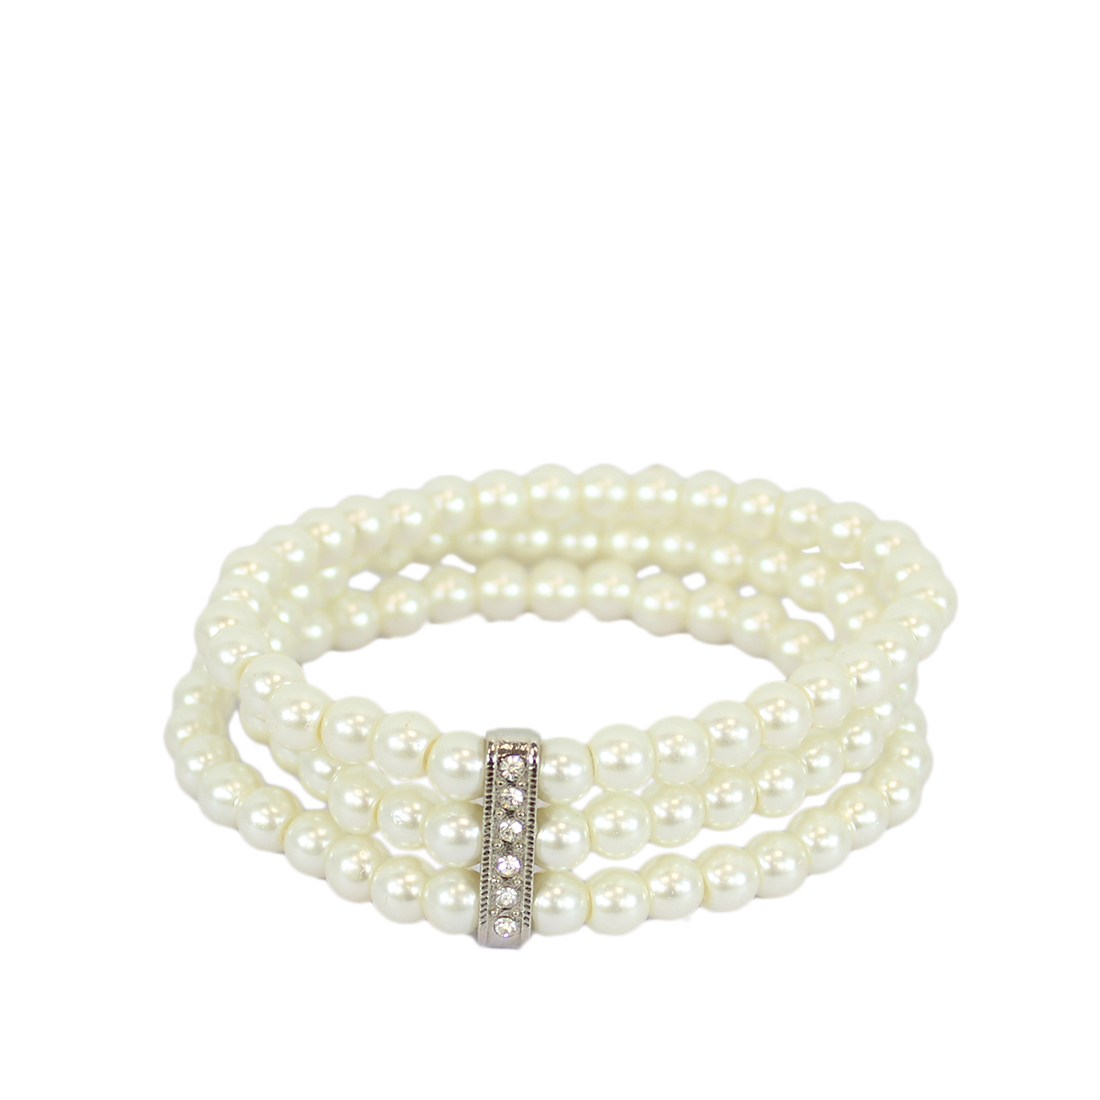 Three layers of pearls with small diamonds